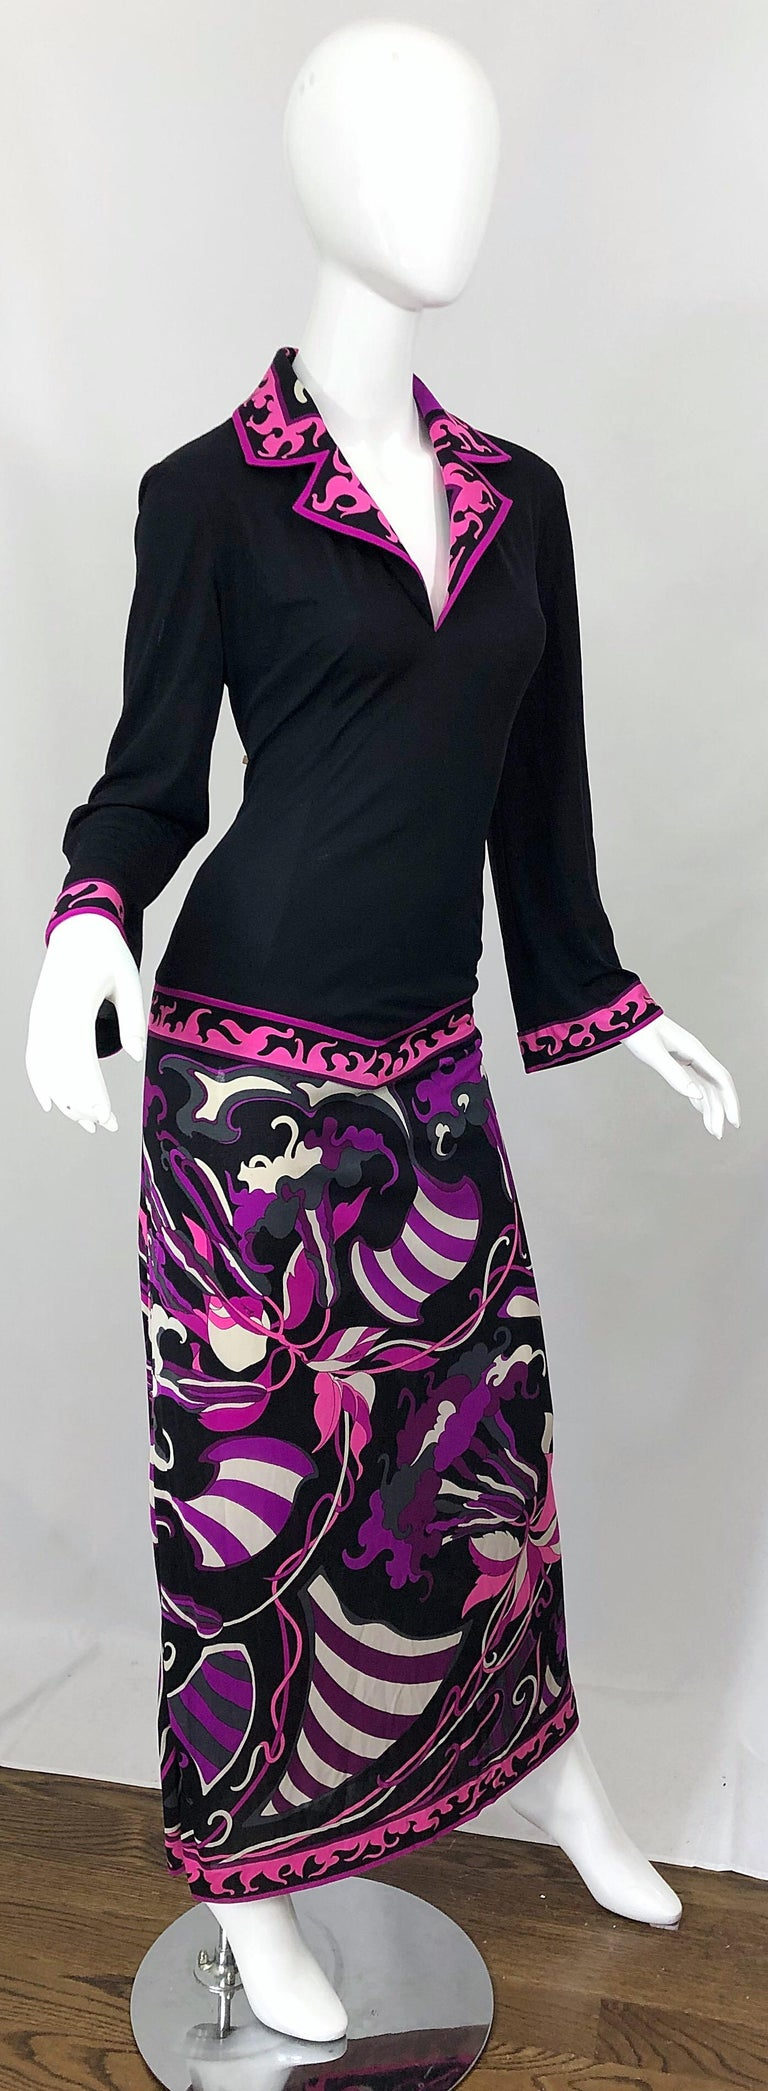 Emilio Pucci 1970s Silk Jersey Pink Purple Black Vintage 70s Maxi Dress For Sale 7